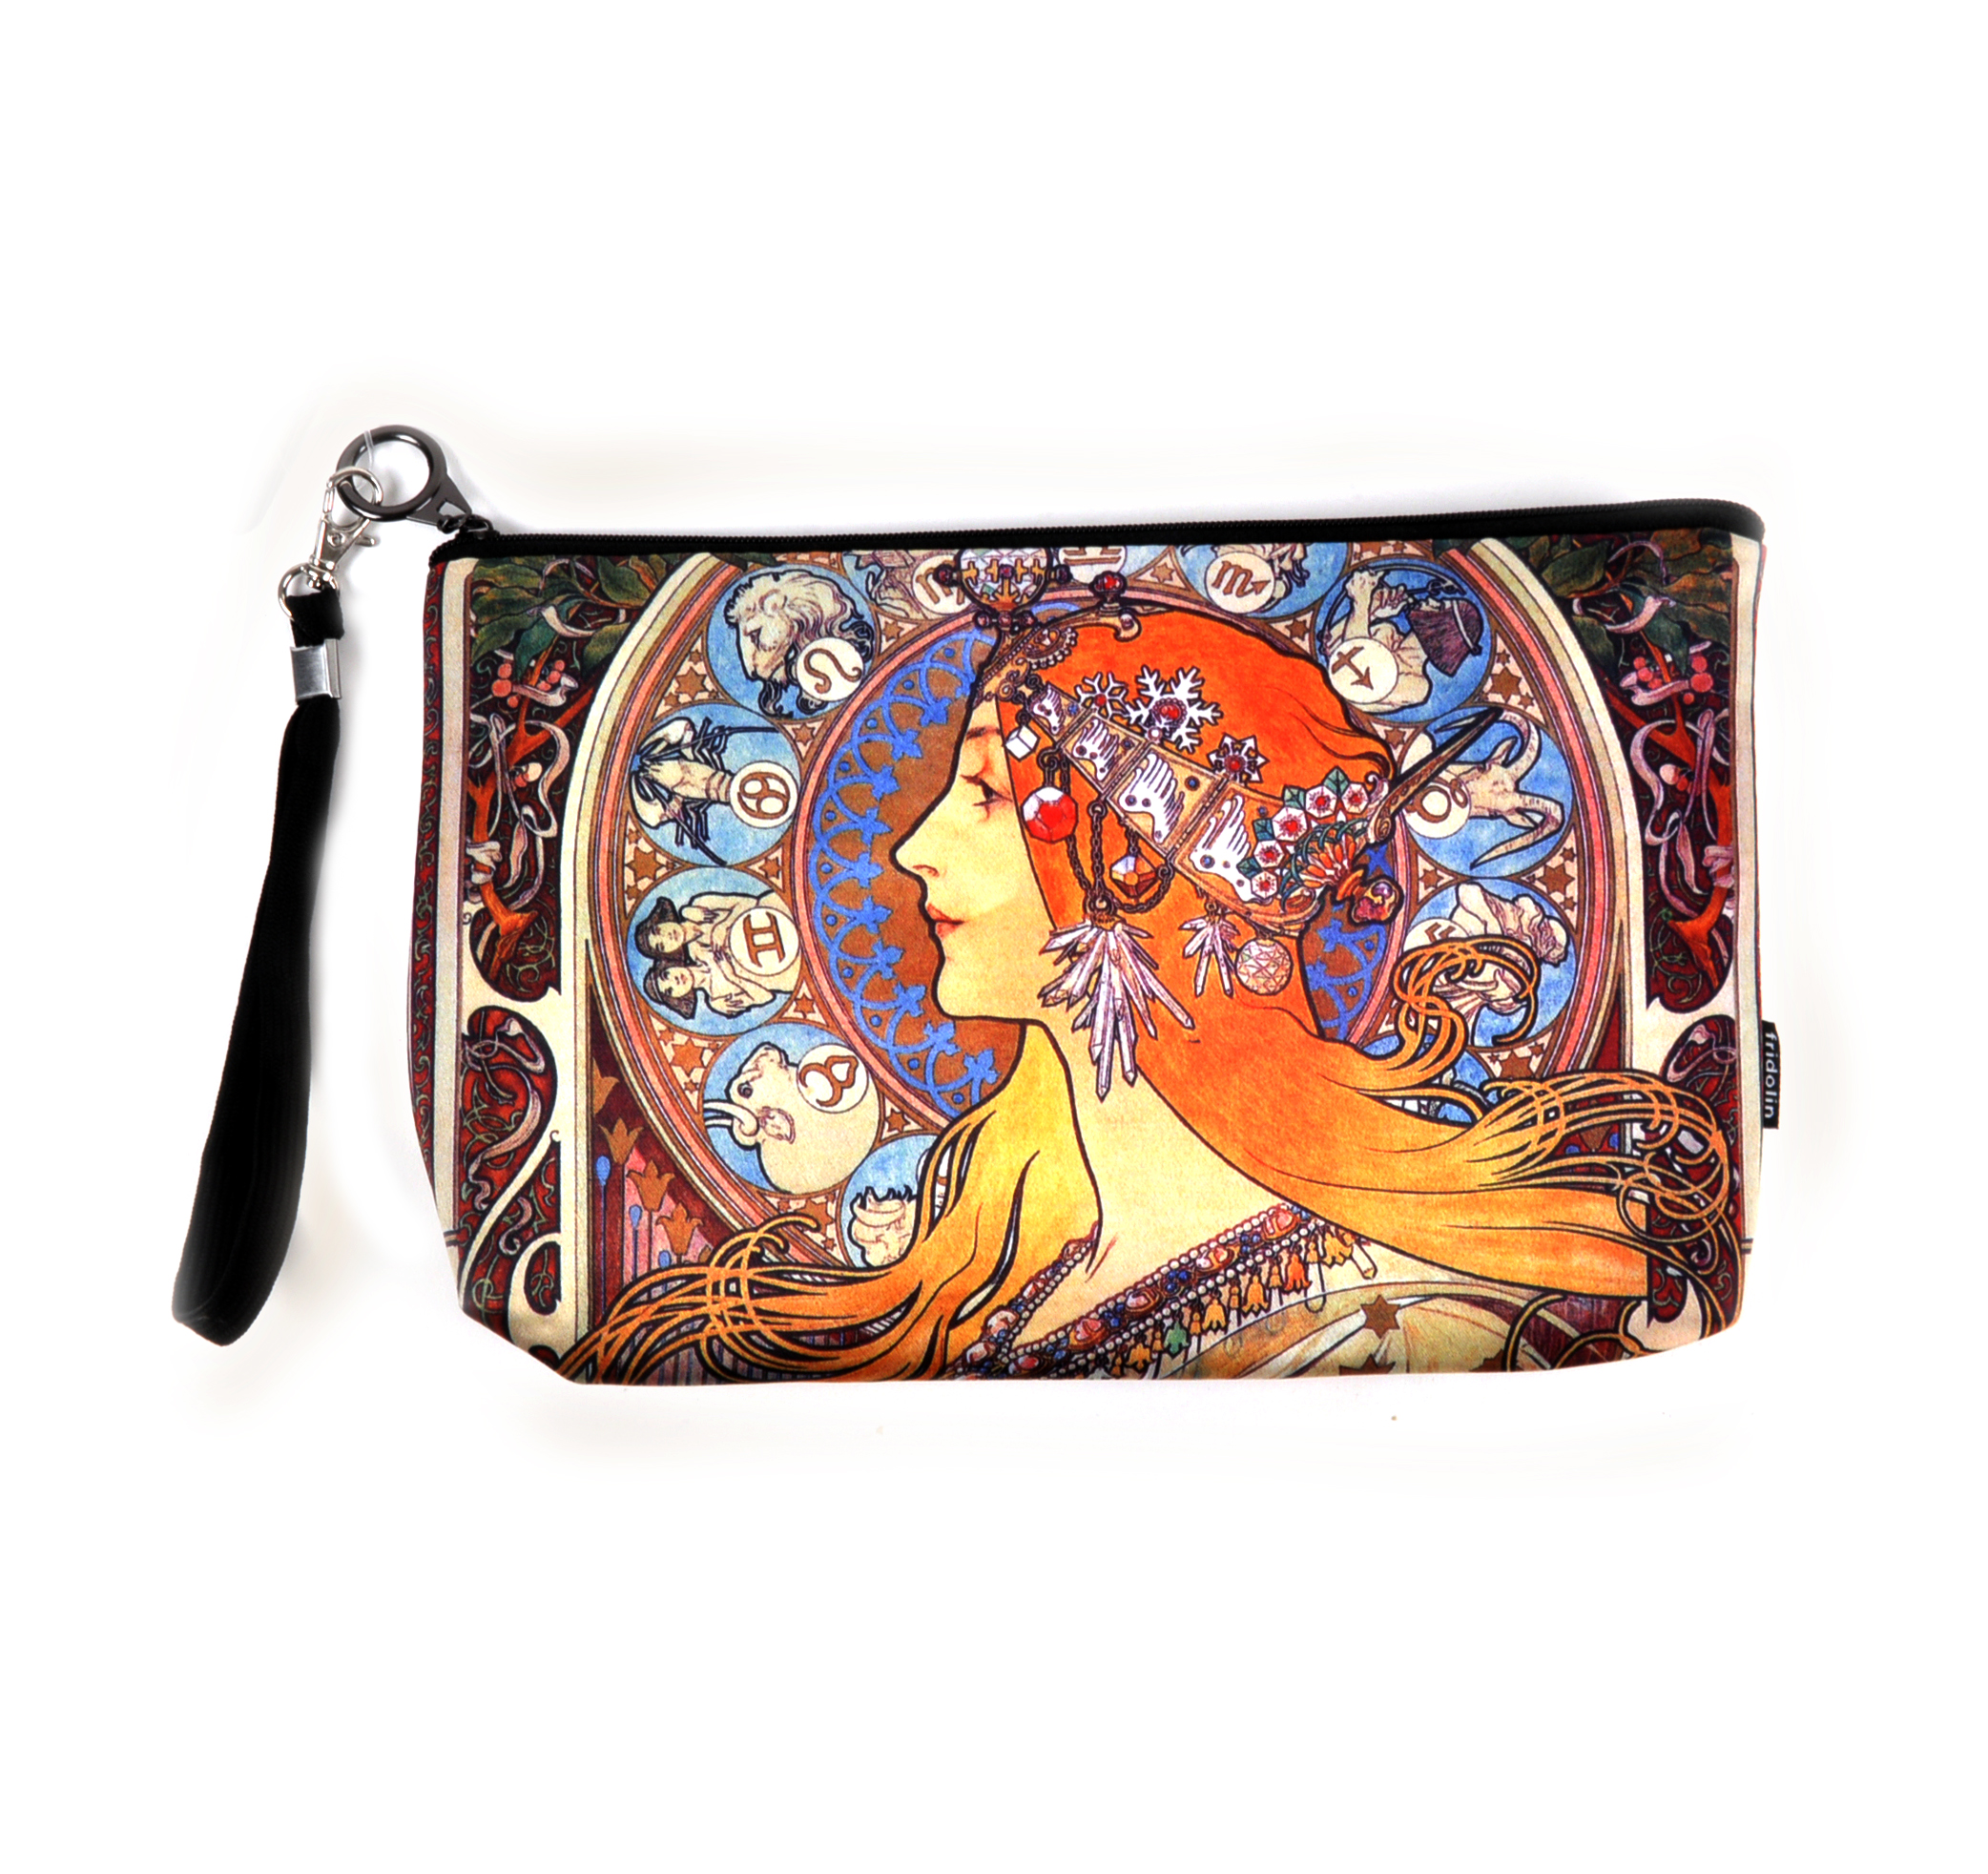 MUCHA AUTUMN AUTOMNE TAPESTRY SHOPPING TOTE BAG BY ROLANDE DU DREUILH 32 X 41CM